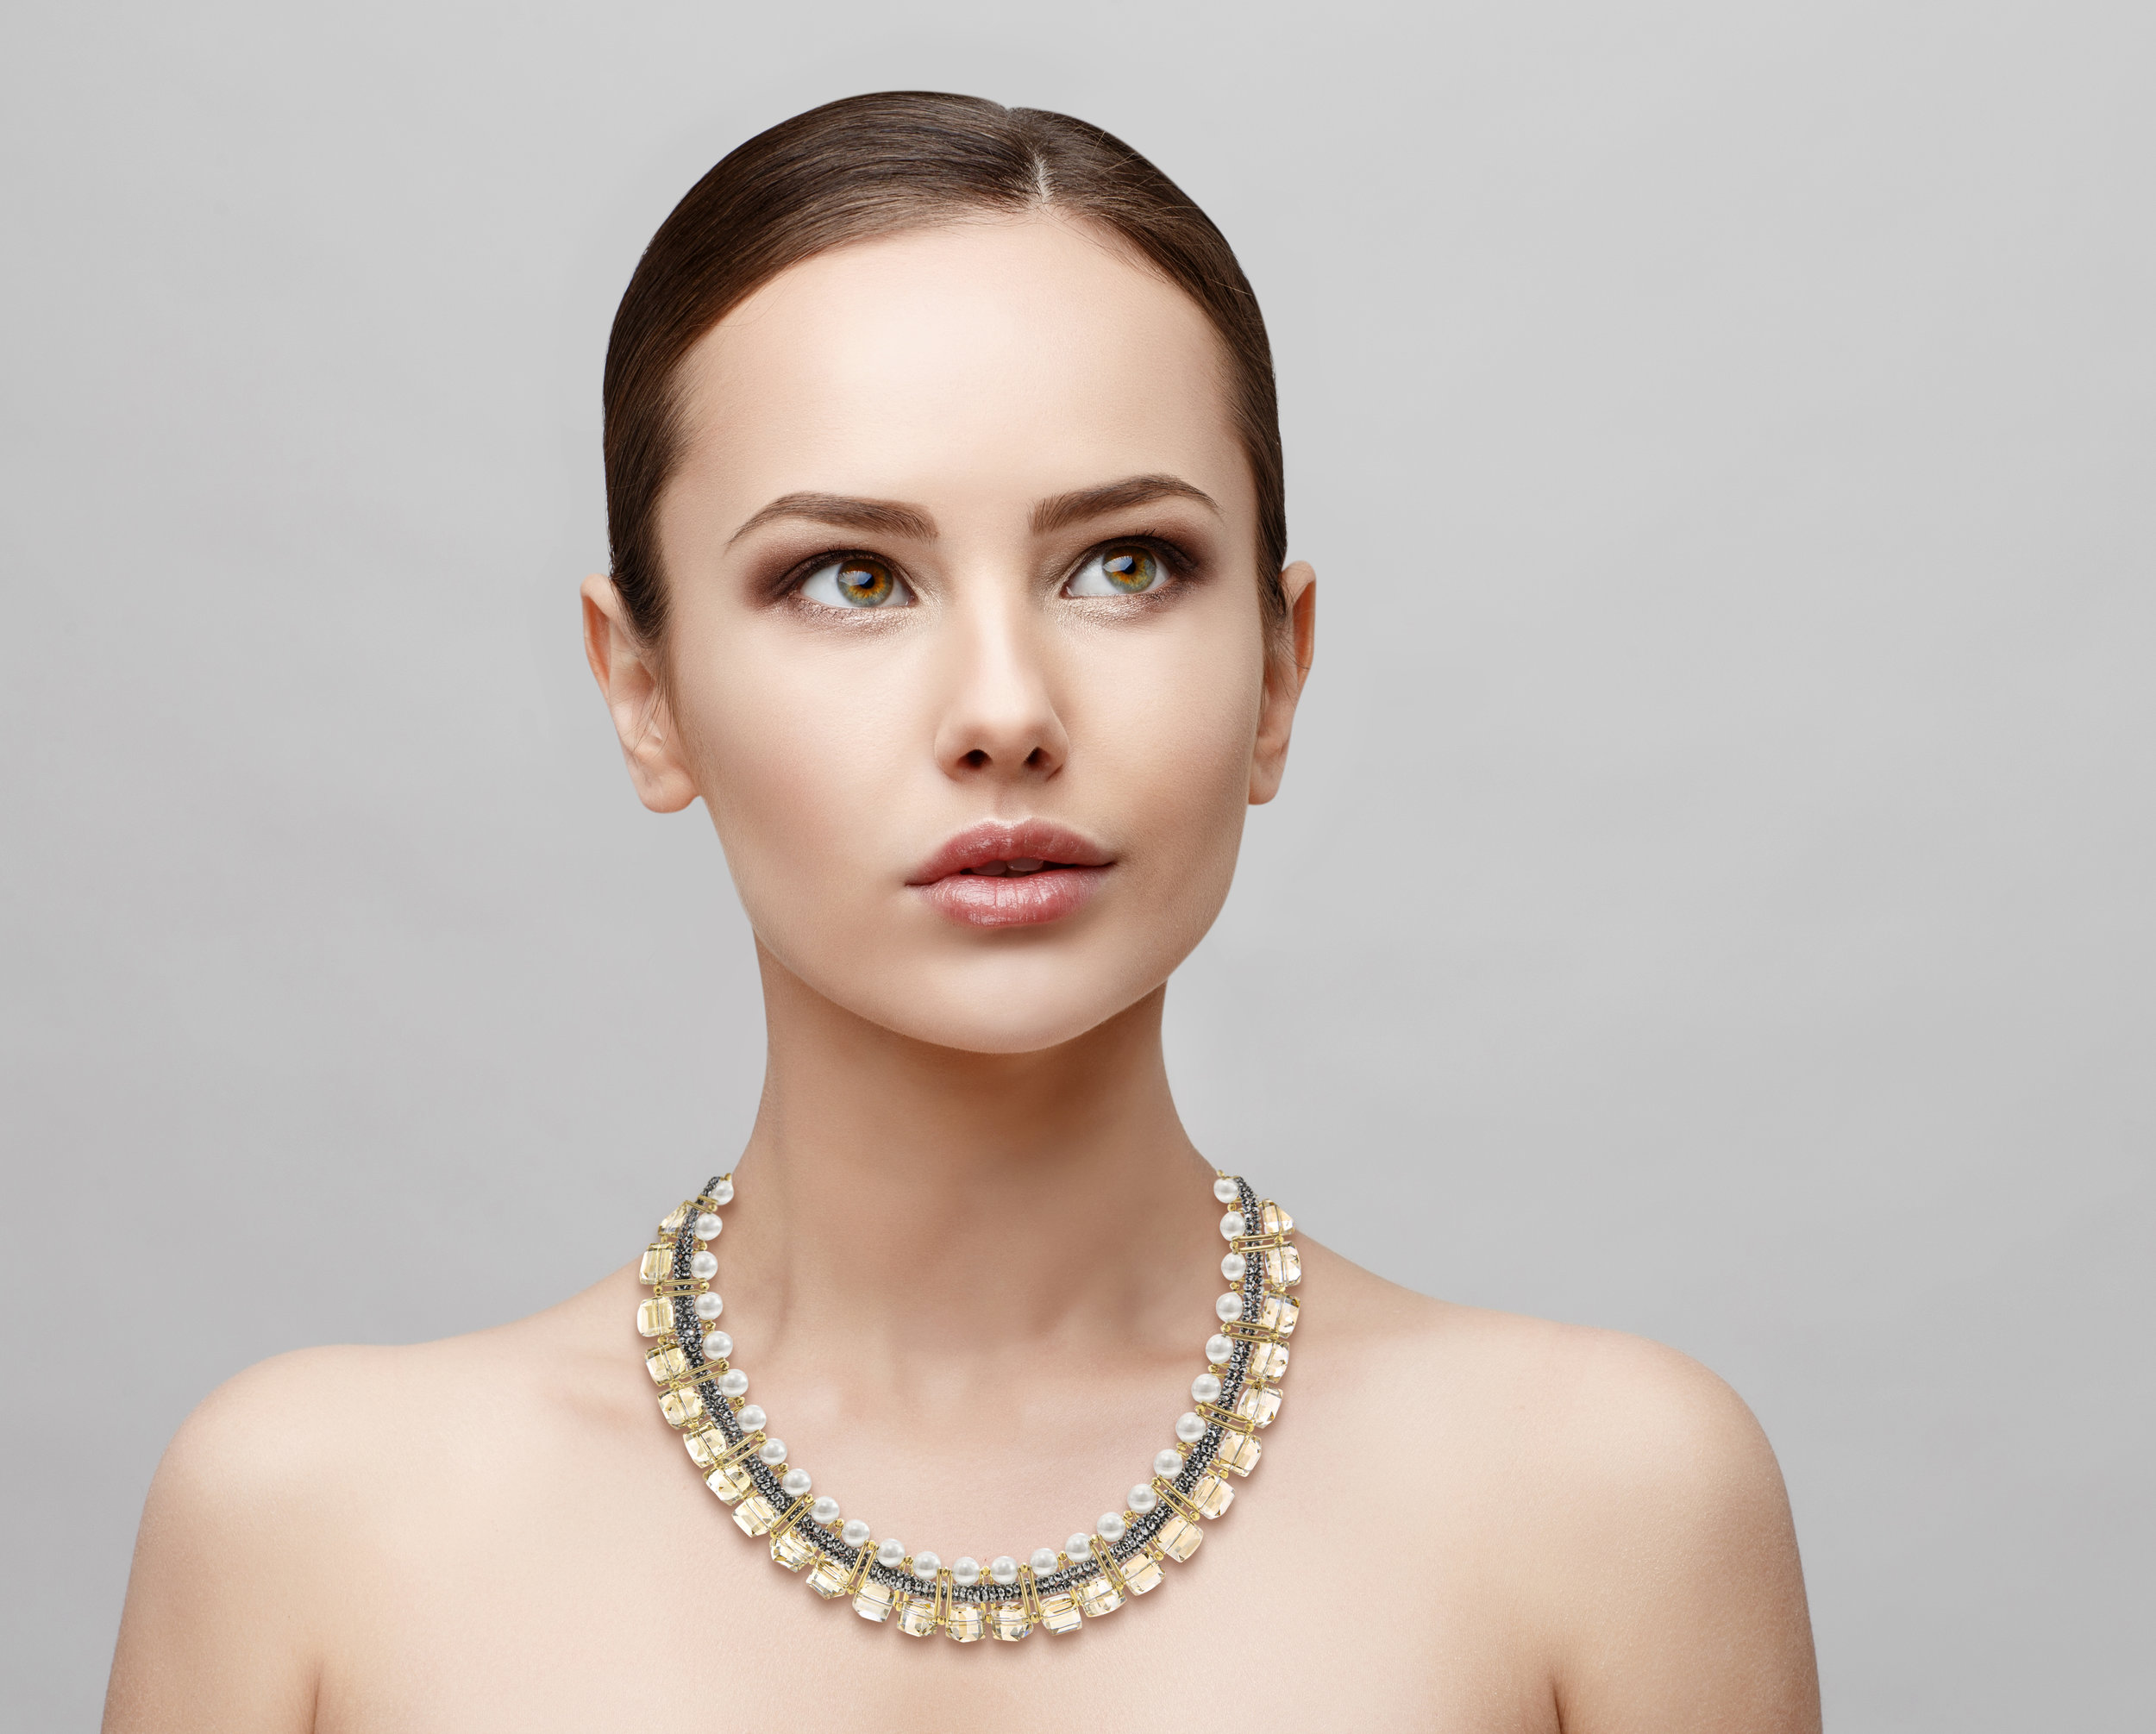 Model-CN12-Necklace (deleted 4094bc2a40abab73953bfba4ca85a88f).jpg